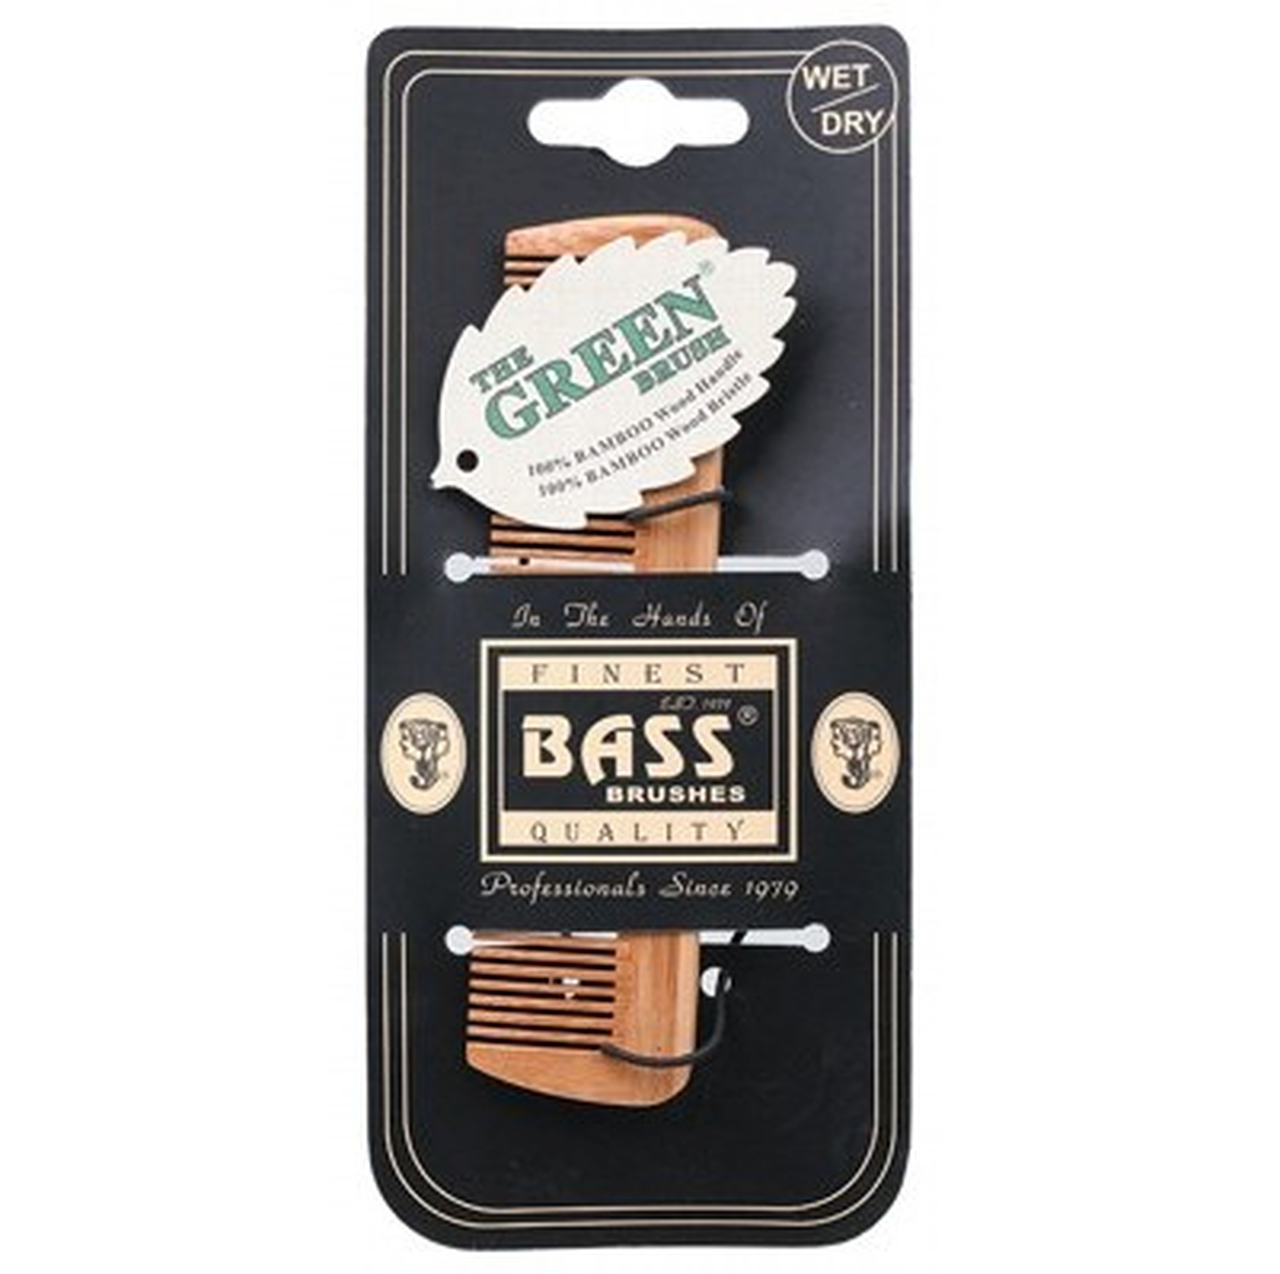 Bass Brushes | Bamboo wood tortoise fine tooth comb | Plastic Free Living | Environmentally Friendly Homewares